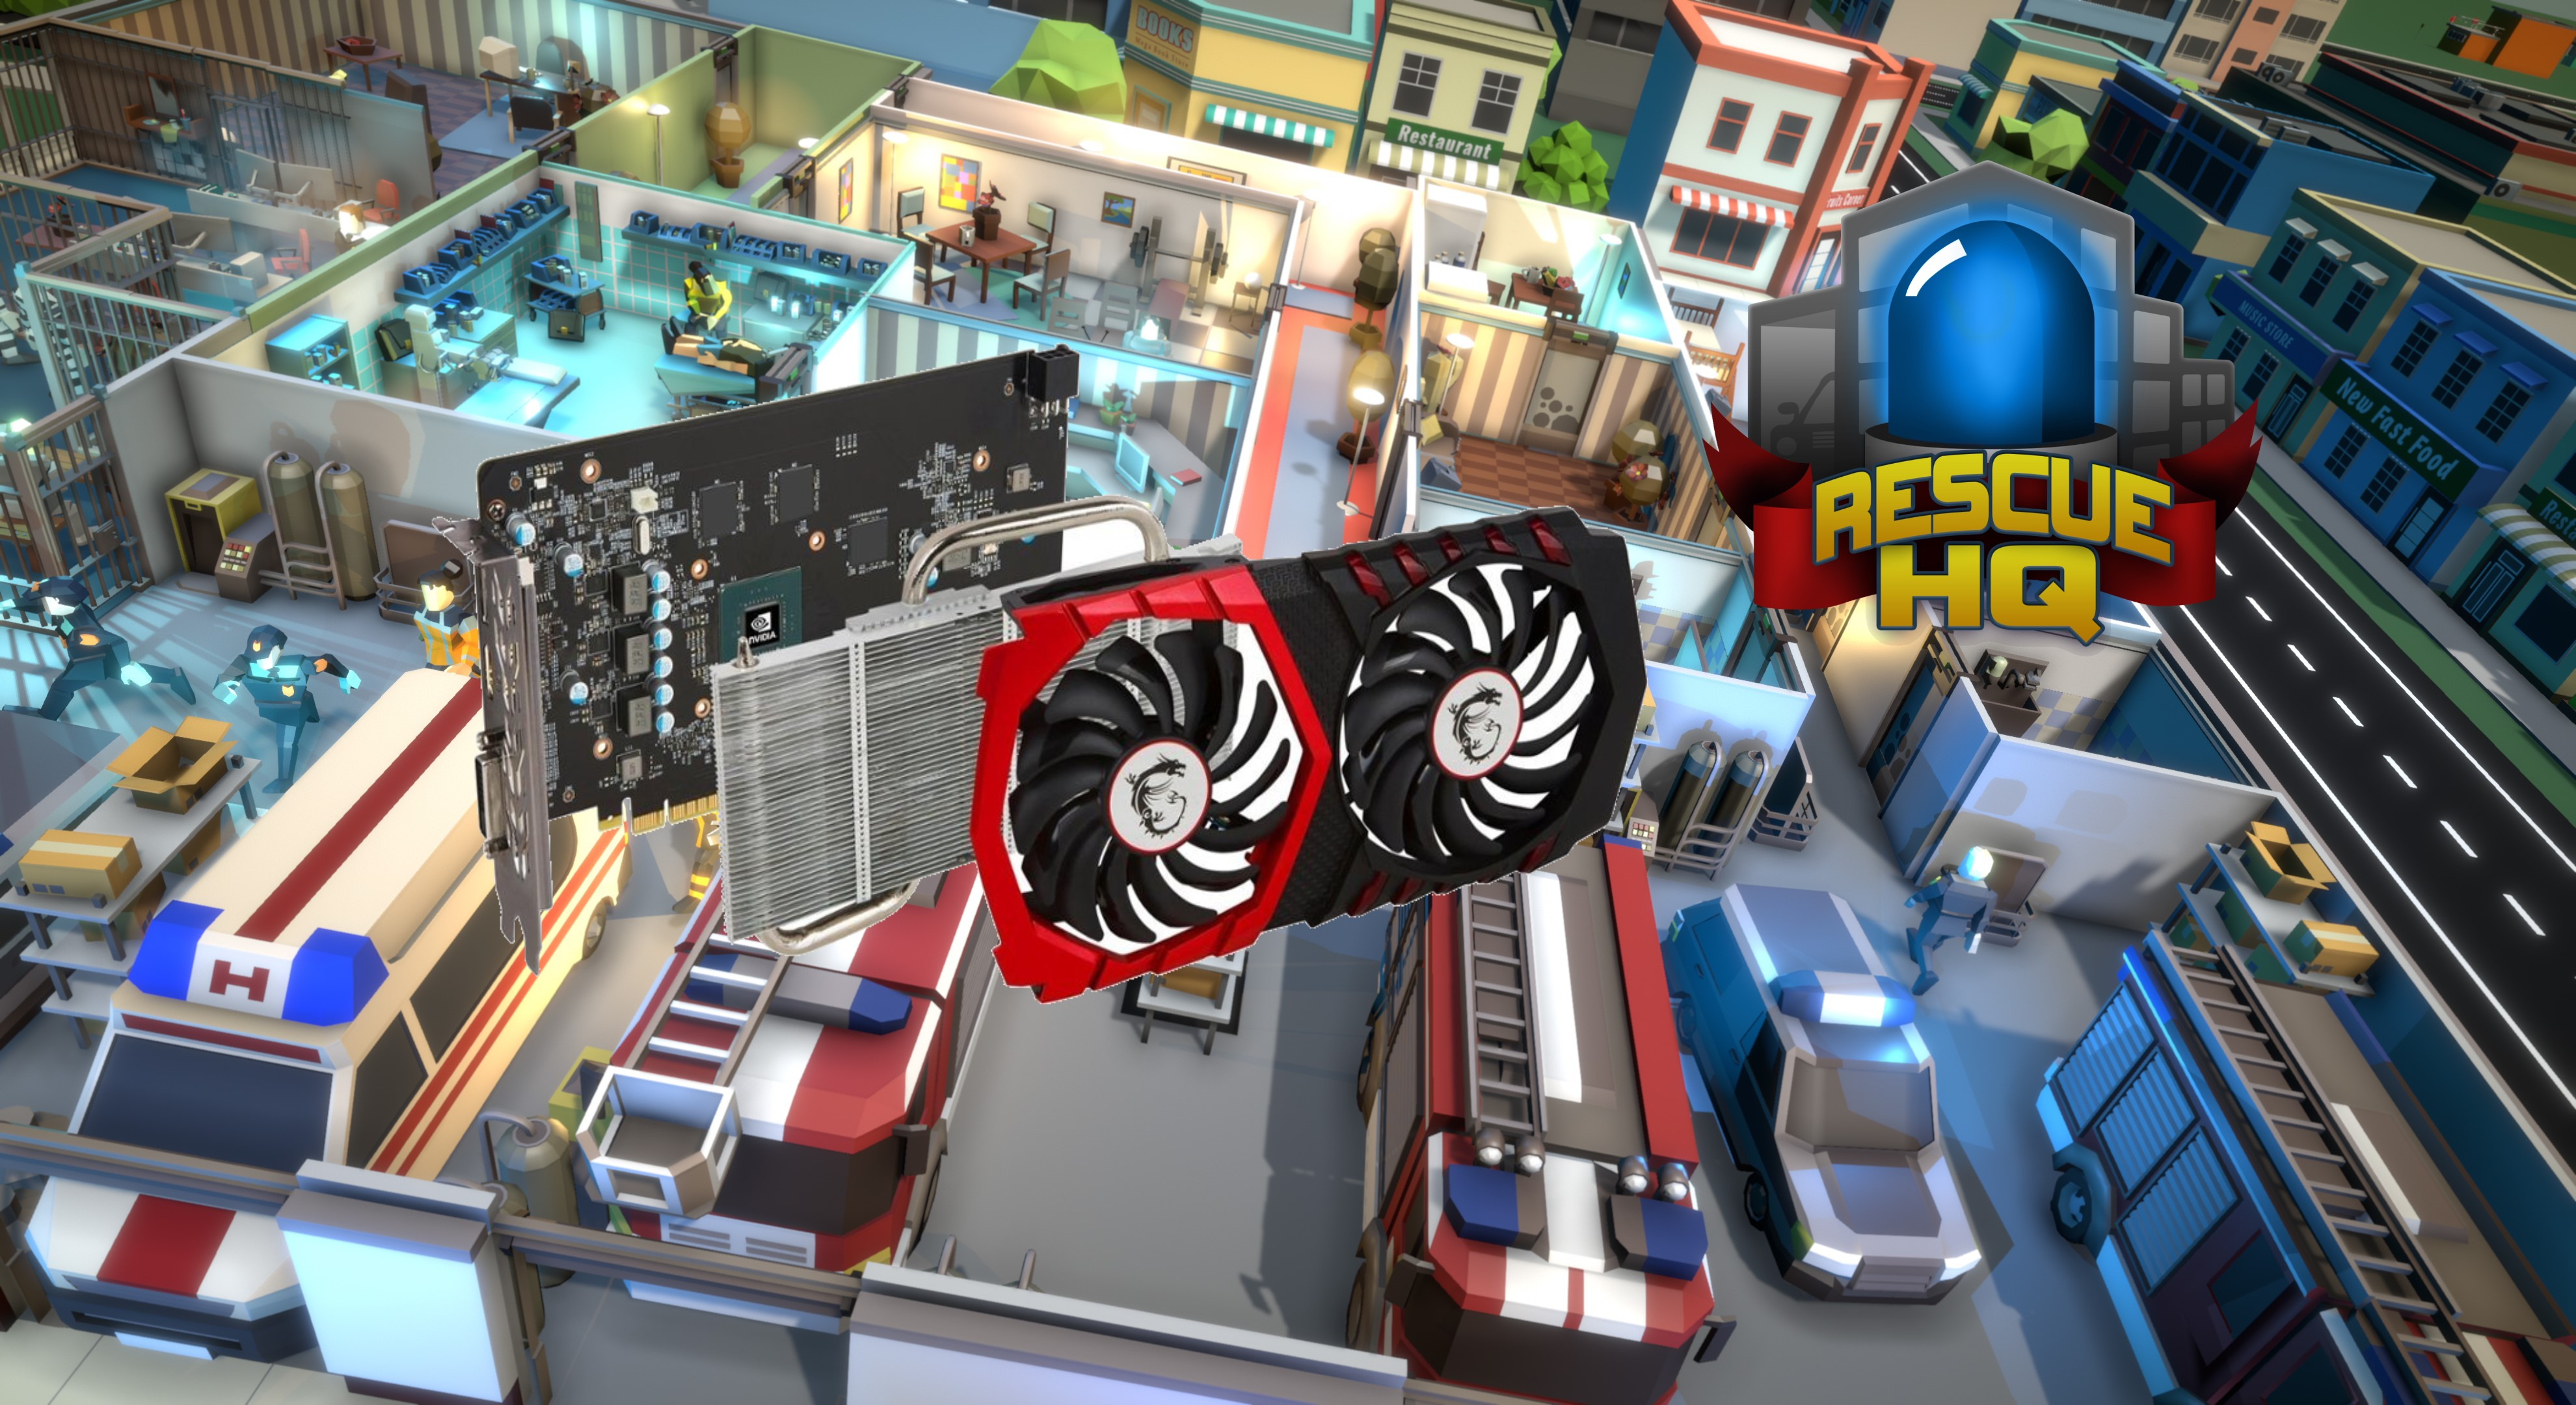 Contest: Win a new graphics card to play Rescue HQ: The Tycoon screenshot